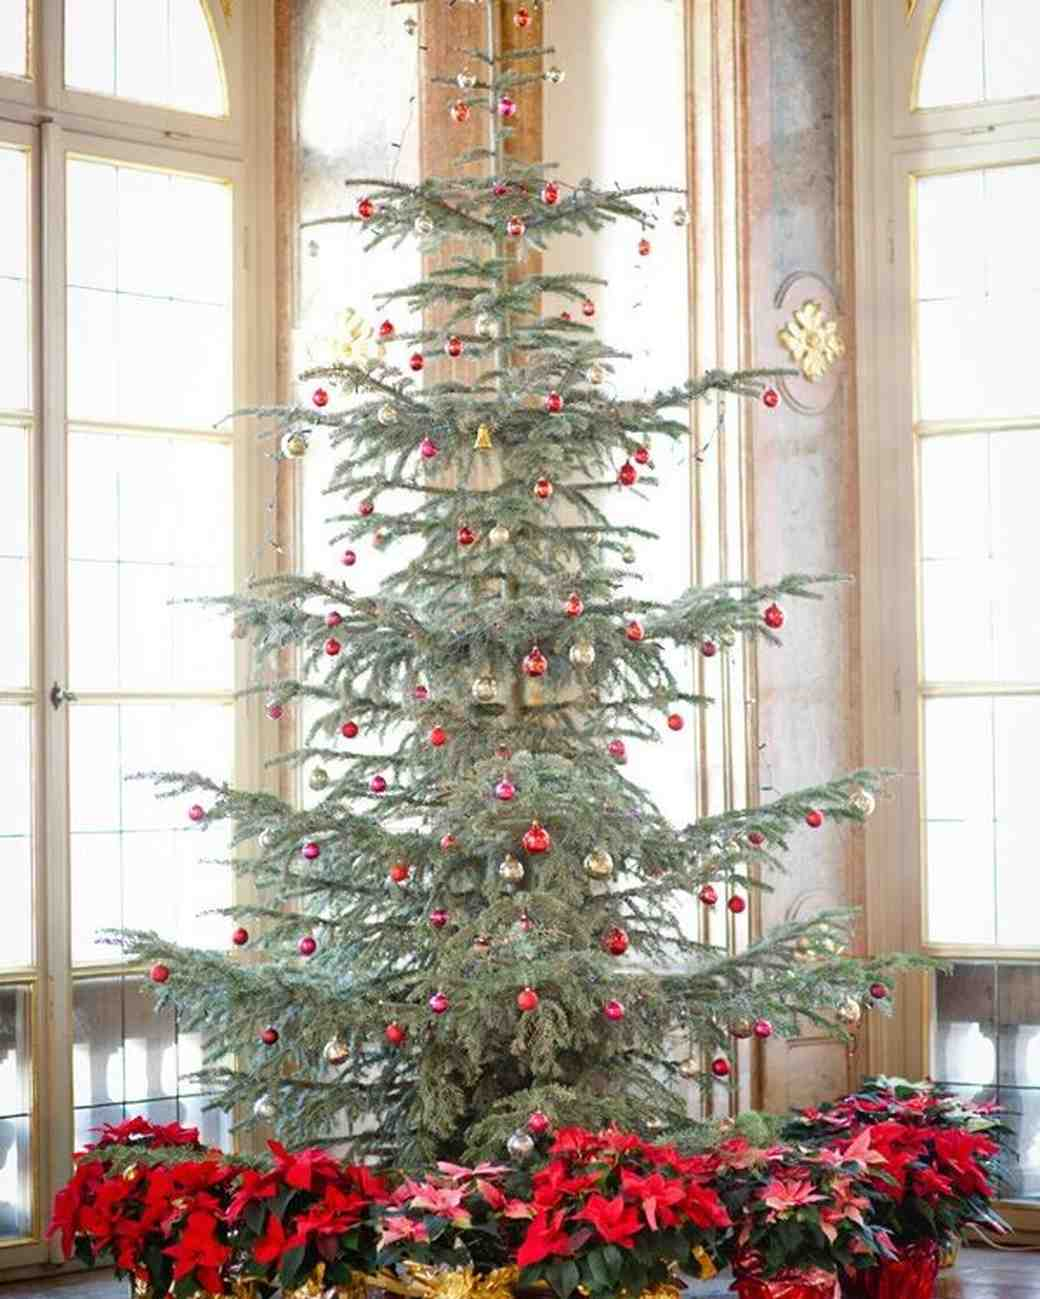 25 Festive Christmas Tree-Inspired Wedding Ideas | Martha Stewart ...